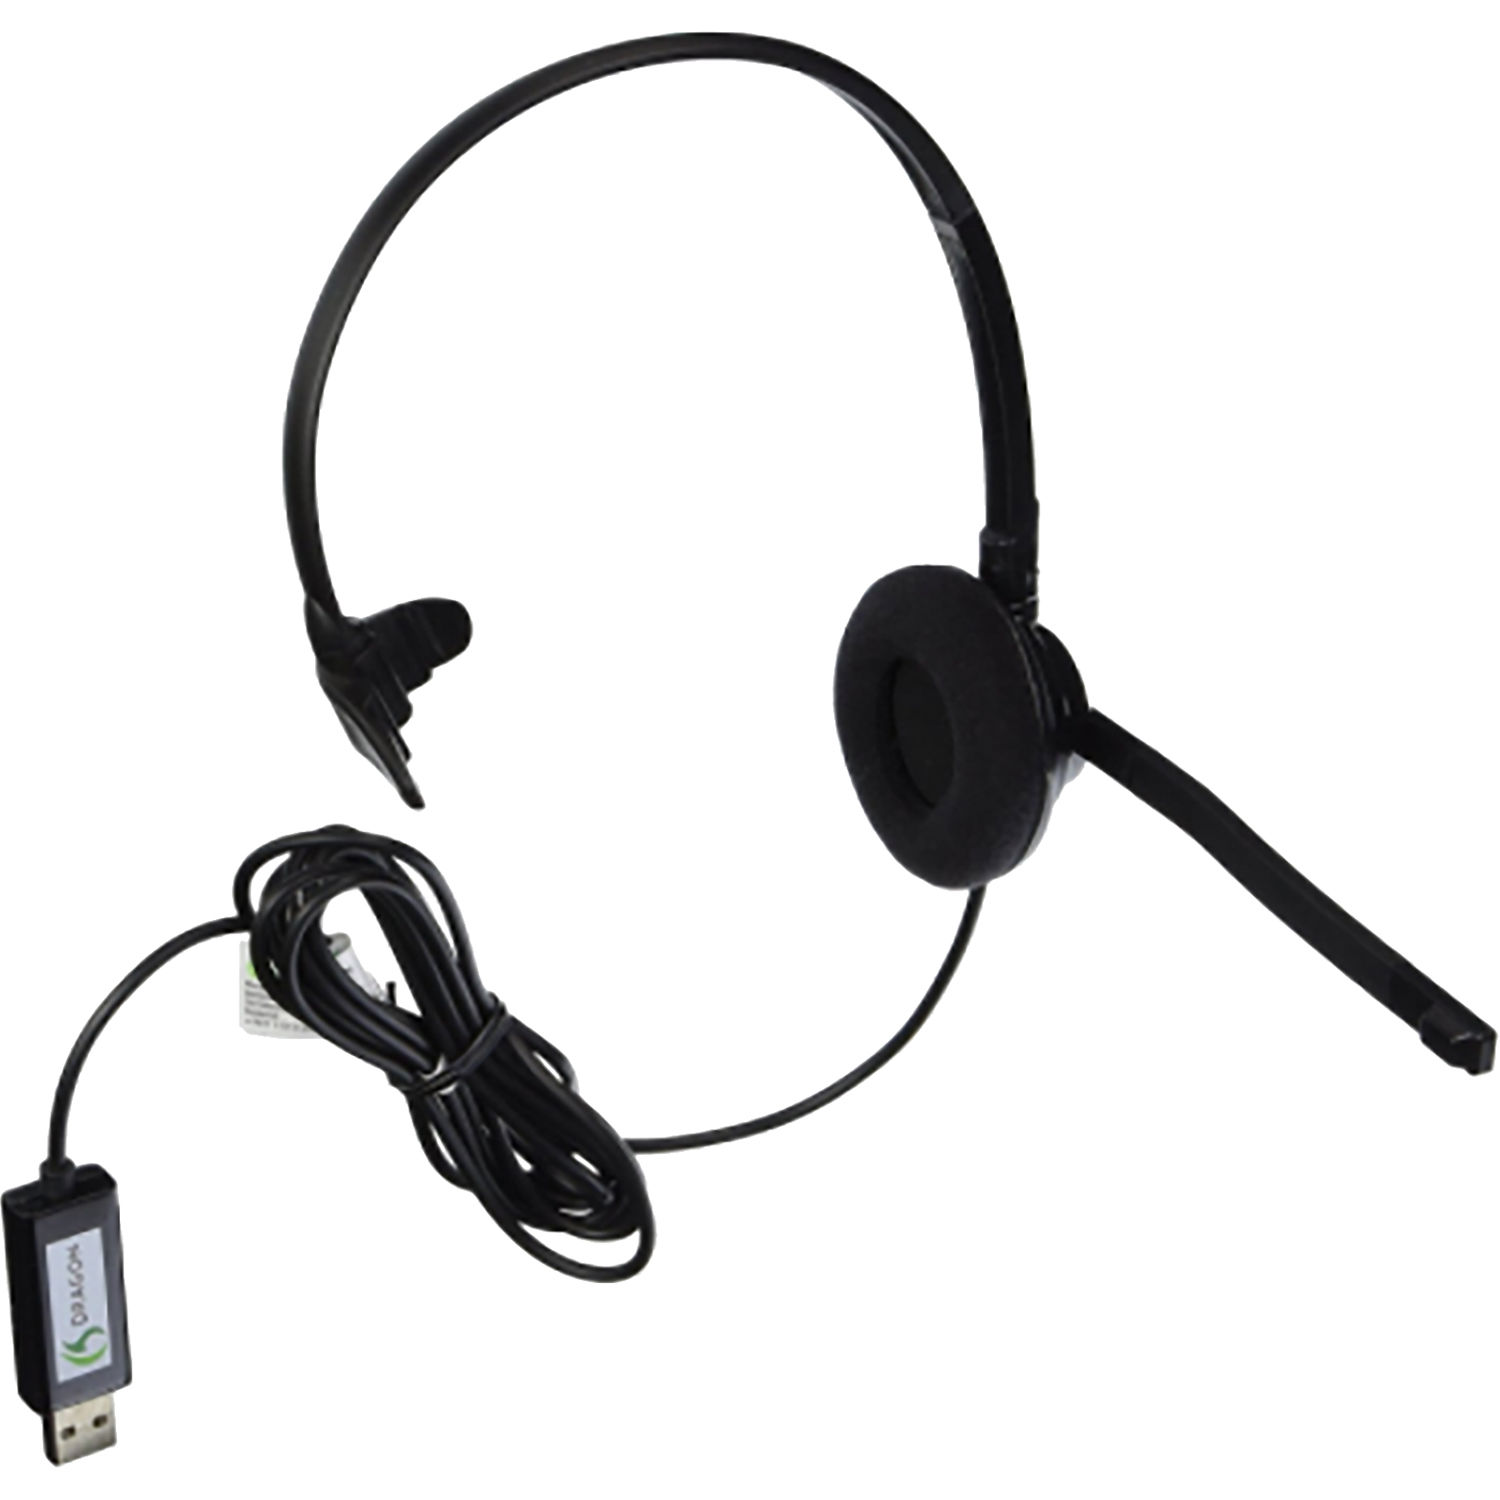 Nuance HS GEN C Stereo Communication Headset With Dragon USB Adapter